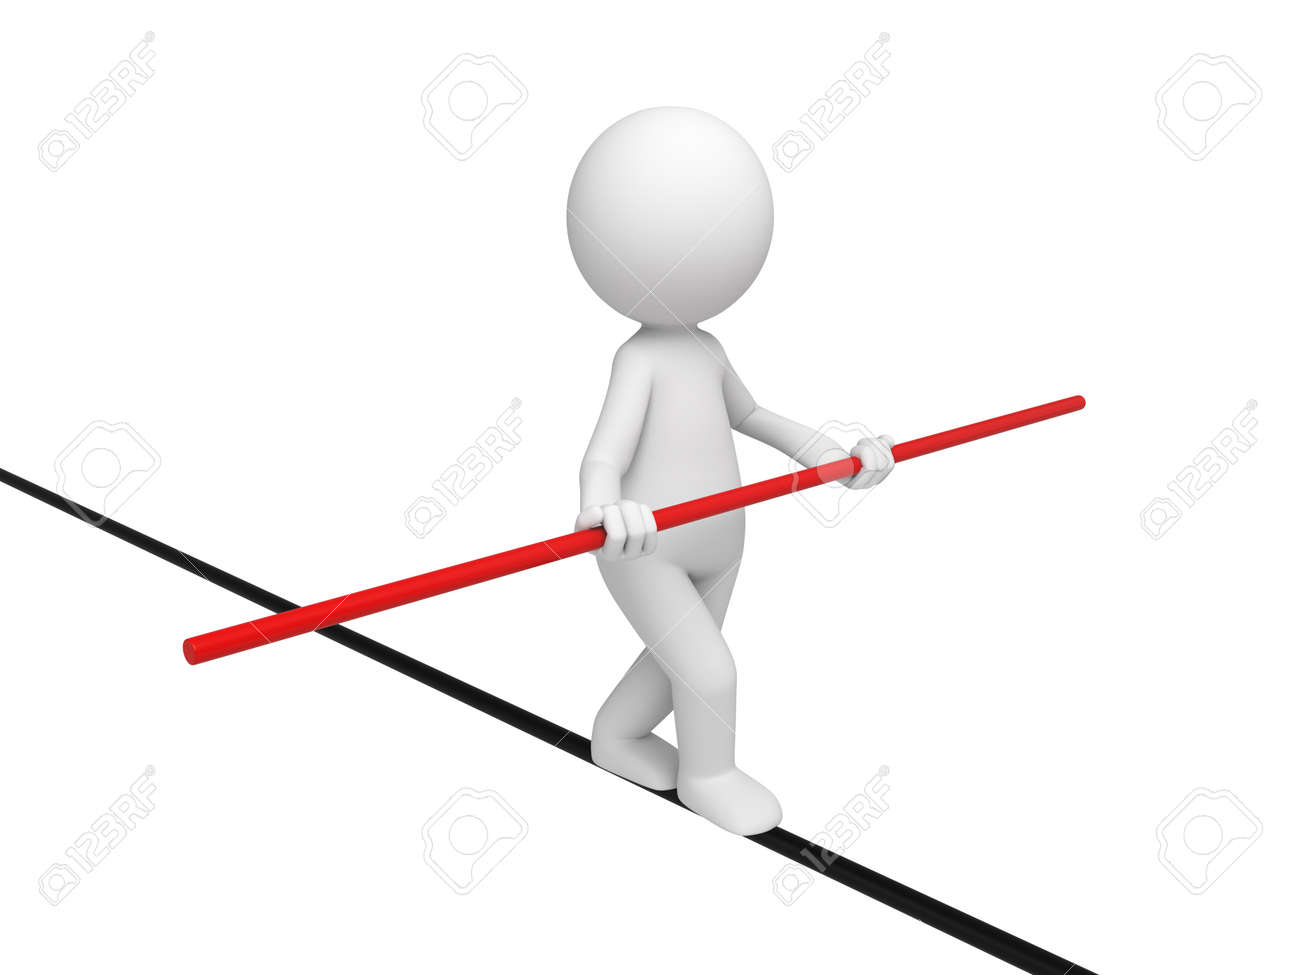 3d people walking on a tightrope. 3d image. Isolated white background - 38266535